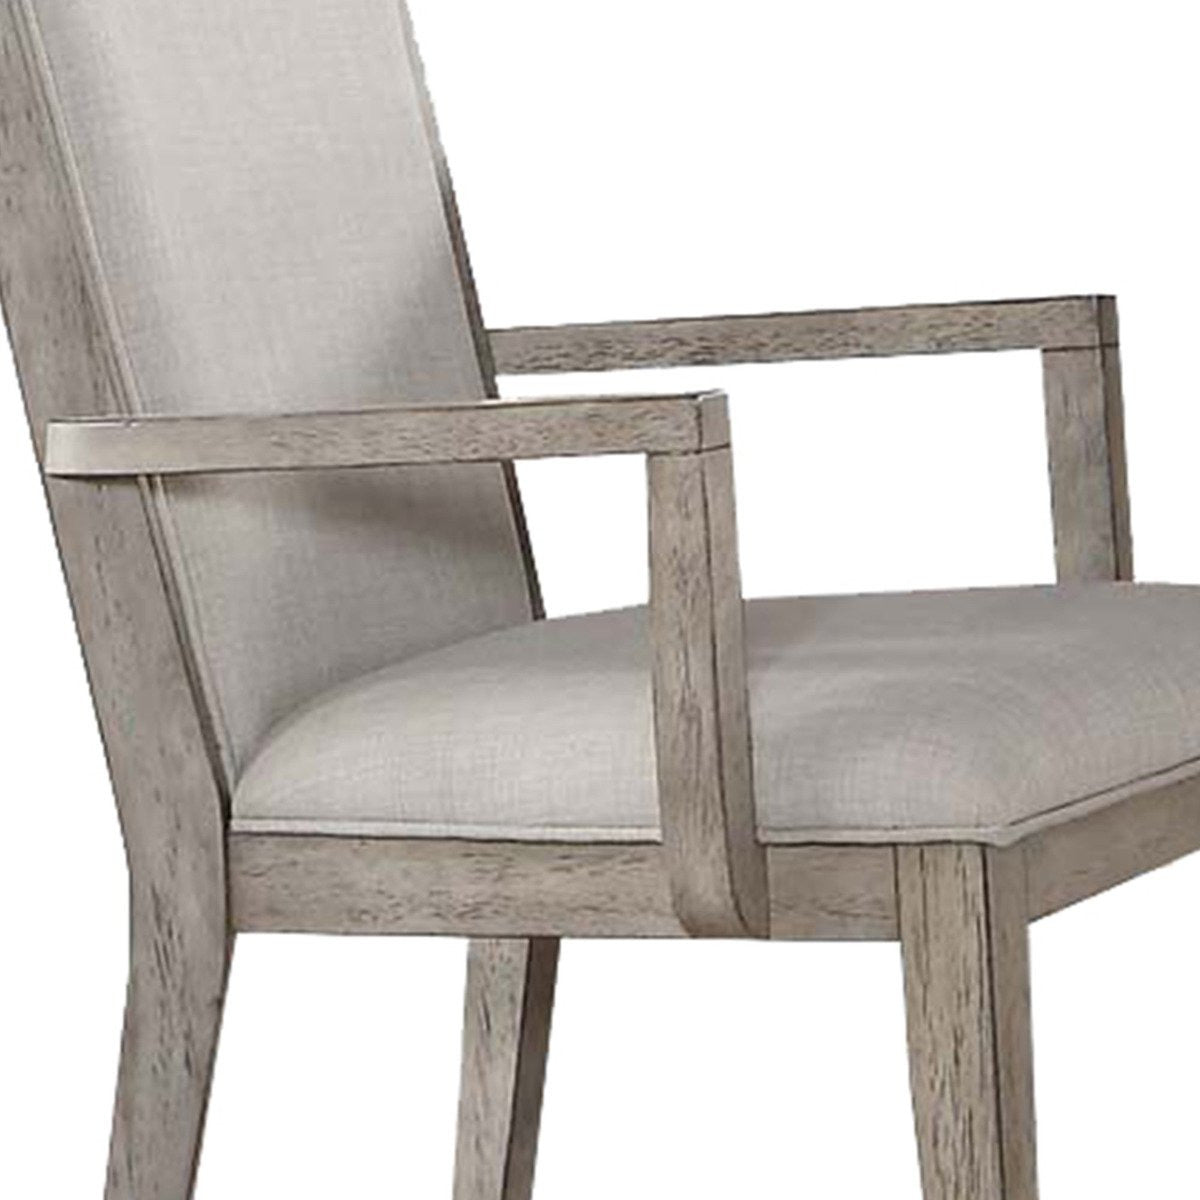 Accent Chairs - Wooden Arm Chairs With Fabric Padded Seat And High Backrest, Gray, Set Of Two